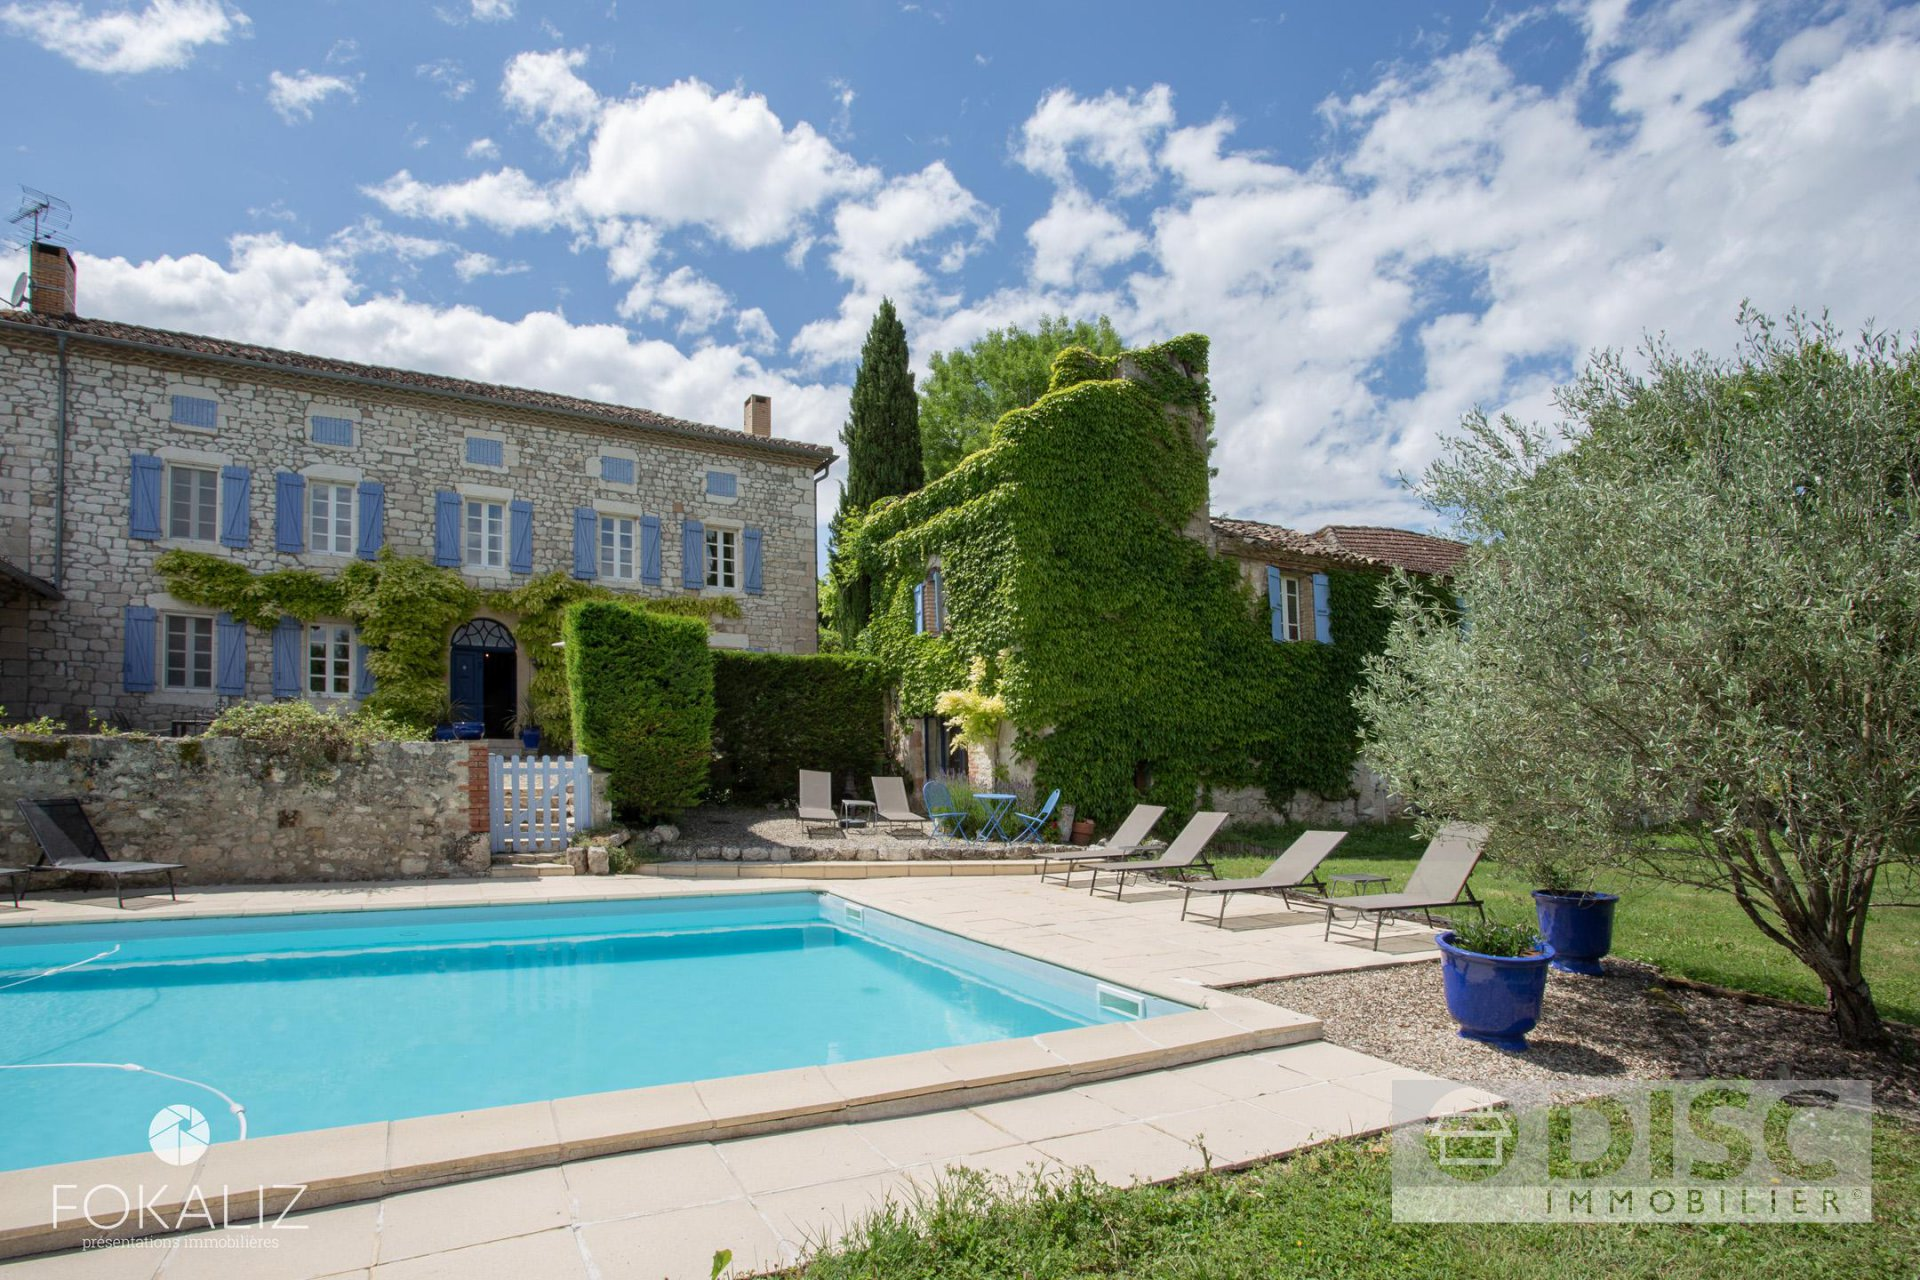 18TH CENTURY MAISON DE MAITRE WITH TWO GUEST HOUSES AND POOL